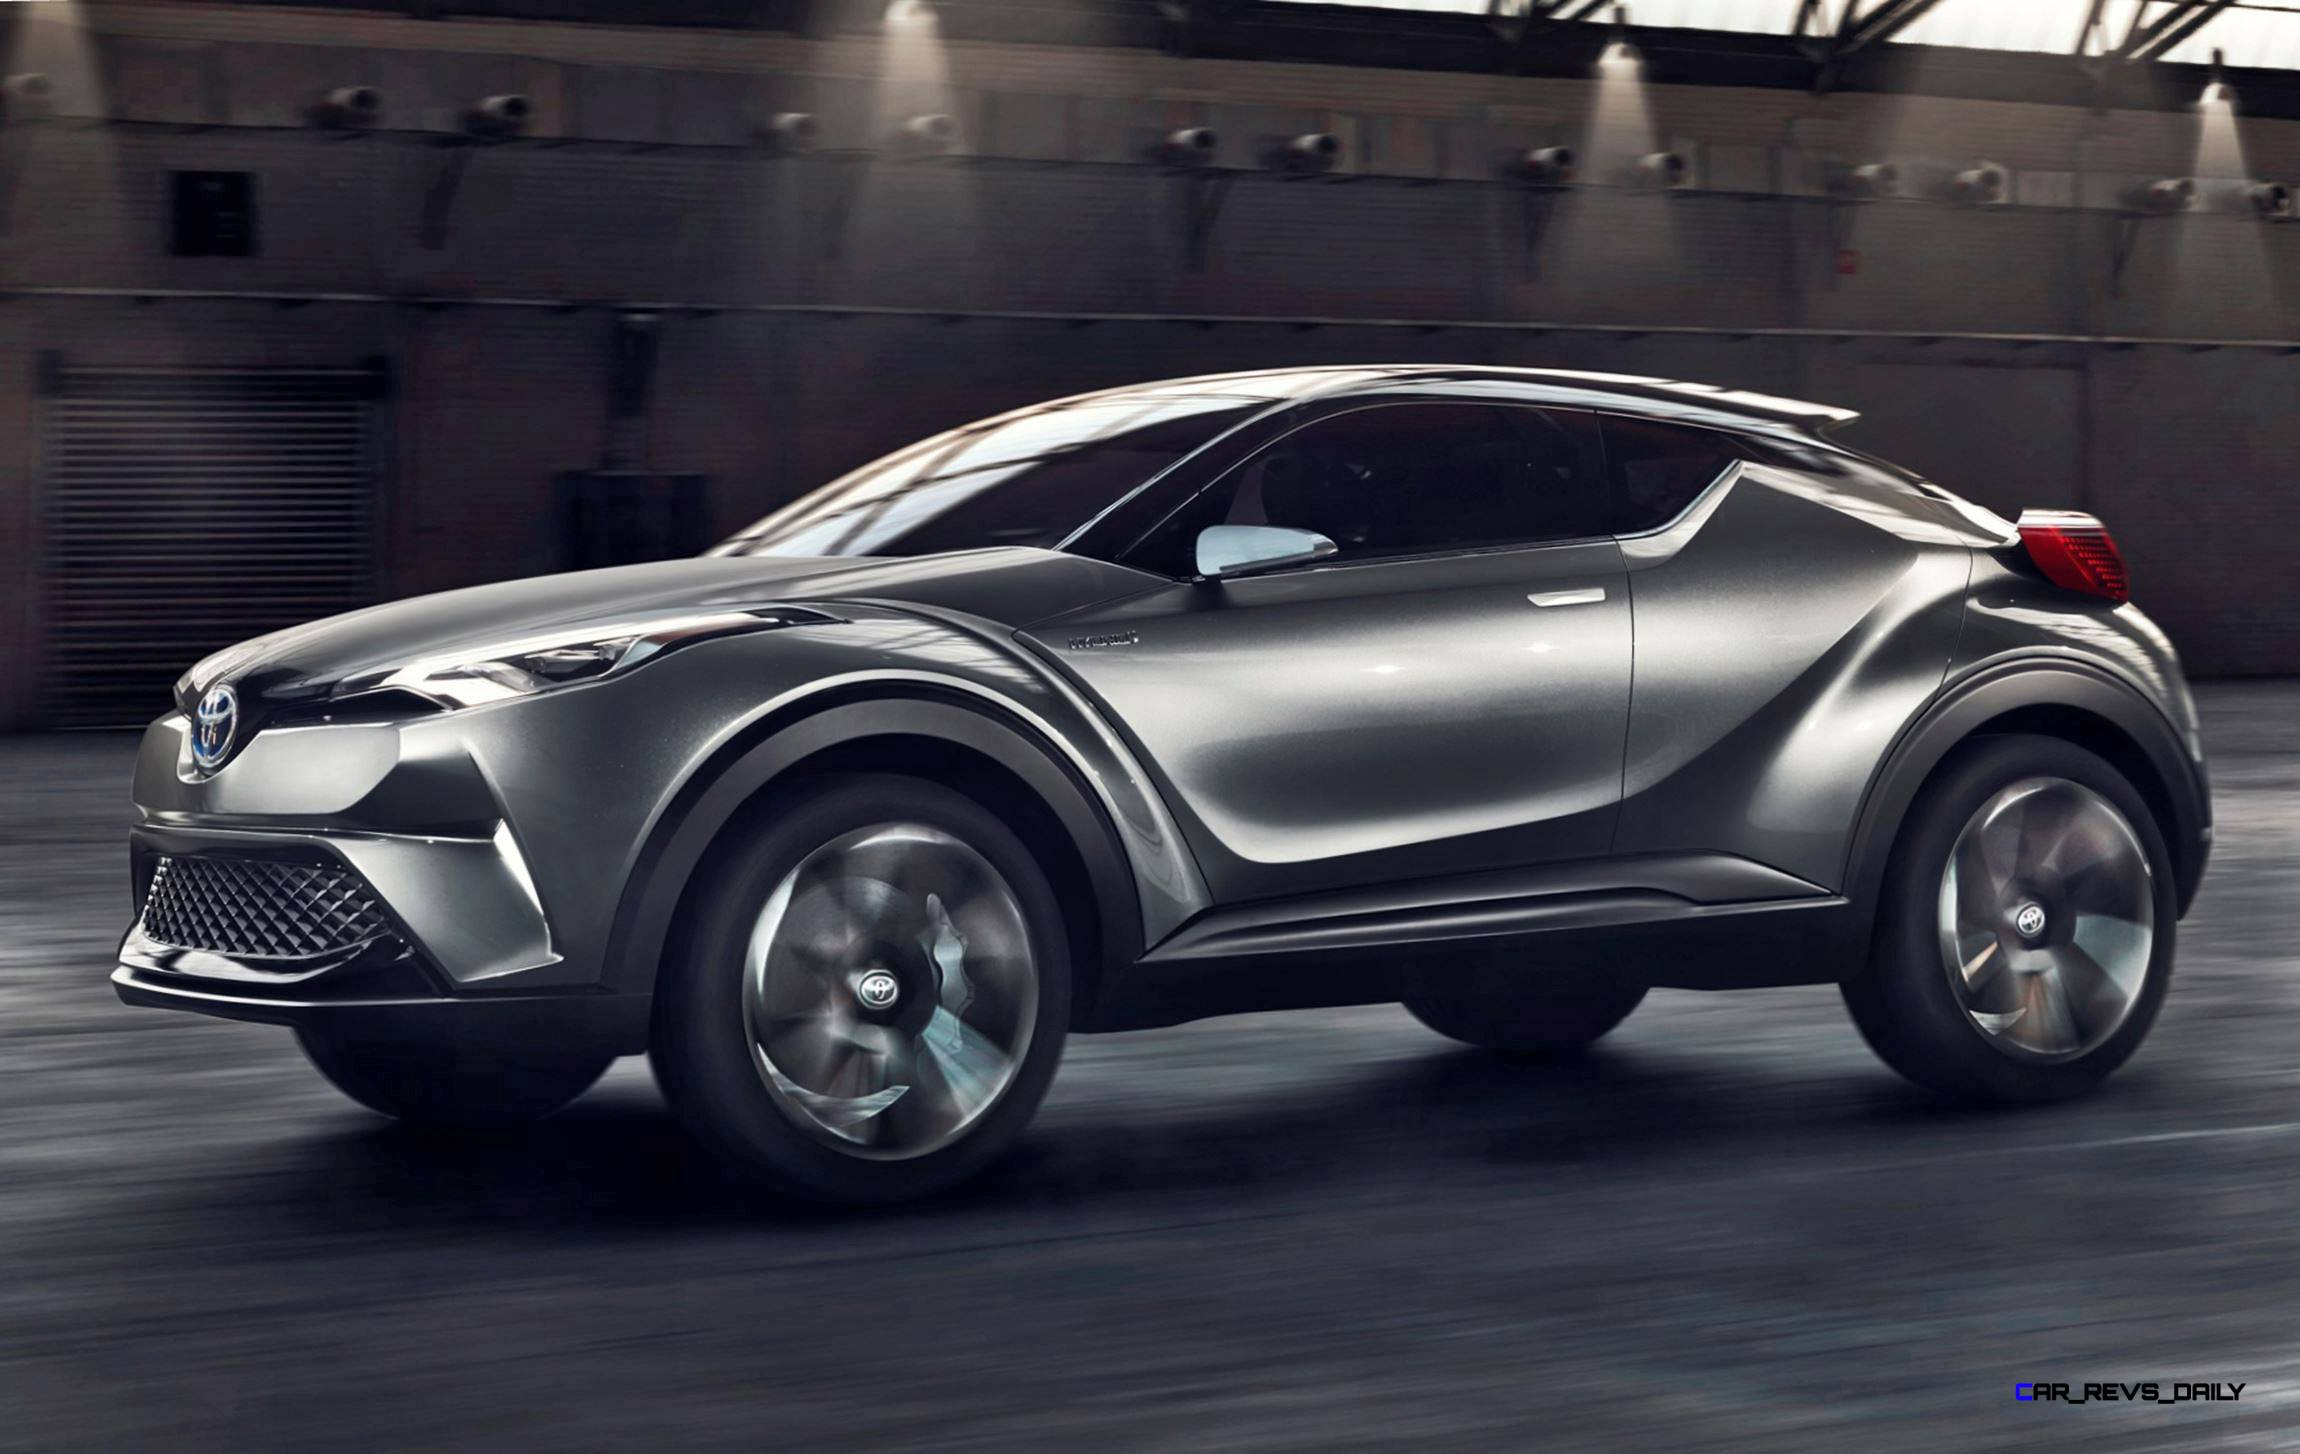 2015 Toyota C-HR Concept 4-Door